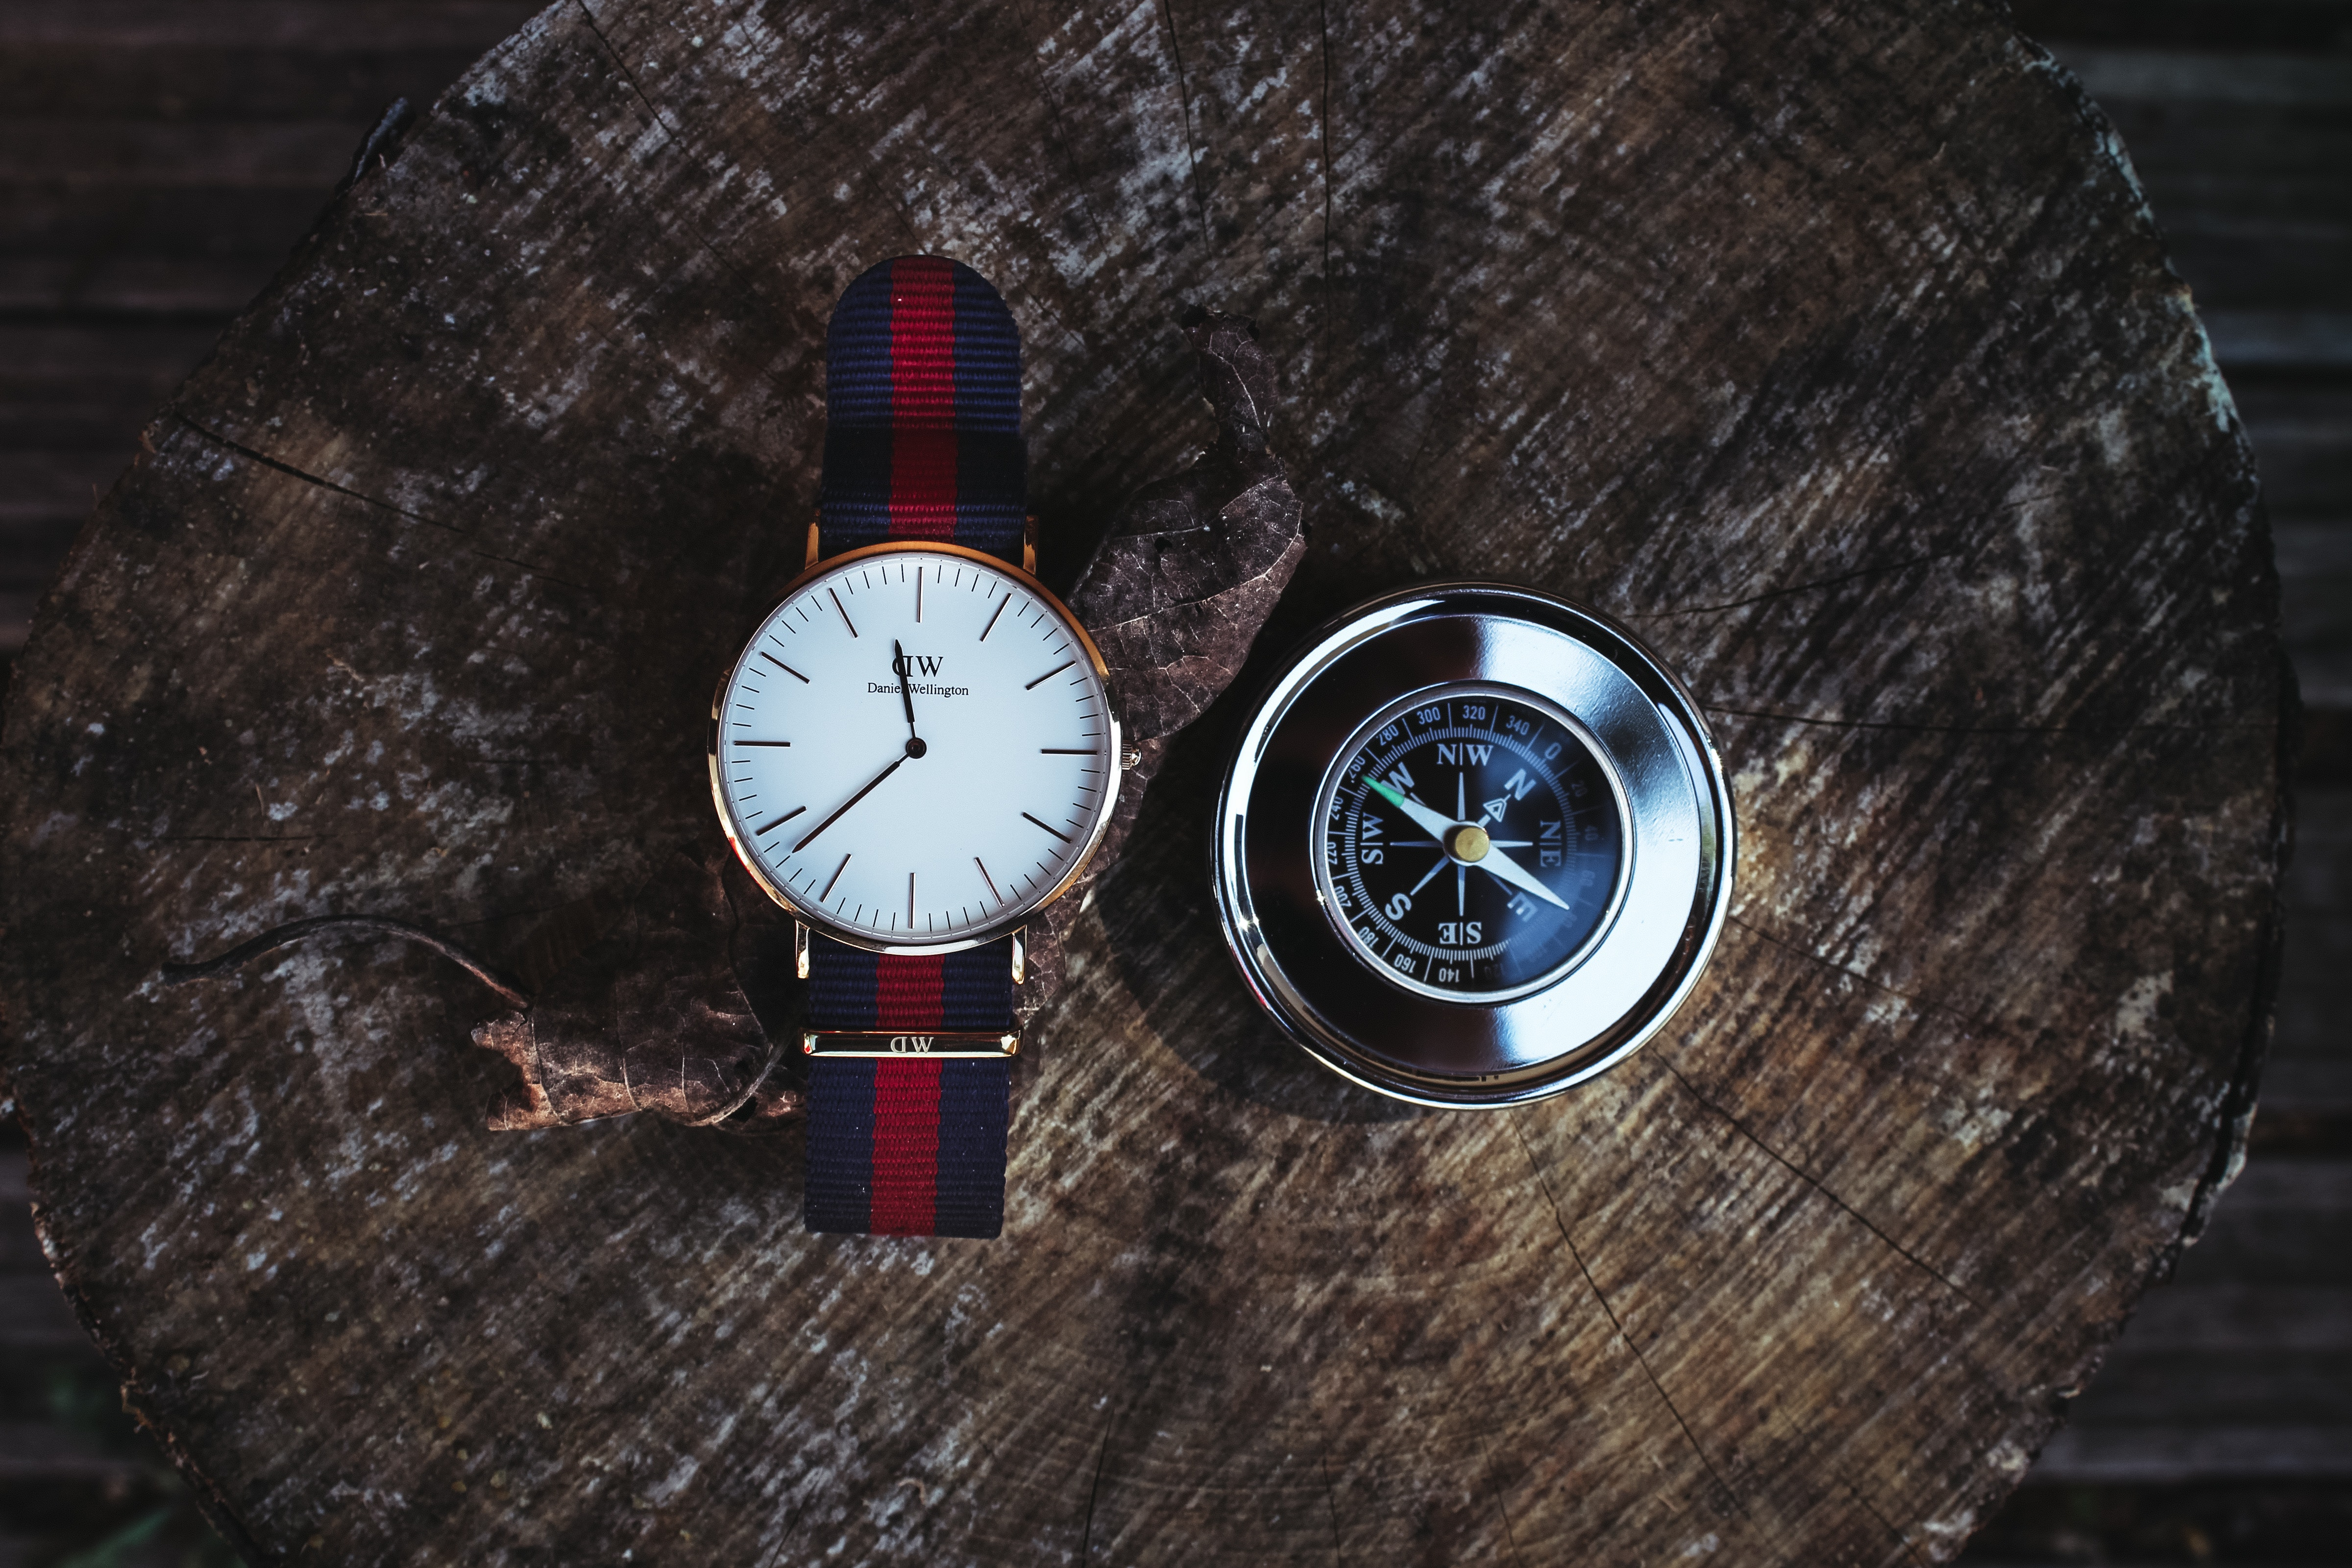 Round Silver-colored Analog Watch Beside Compass, Analogue, Precision, Wood, Watch, HQ Photo